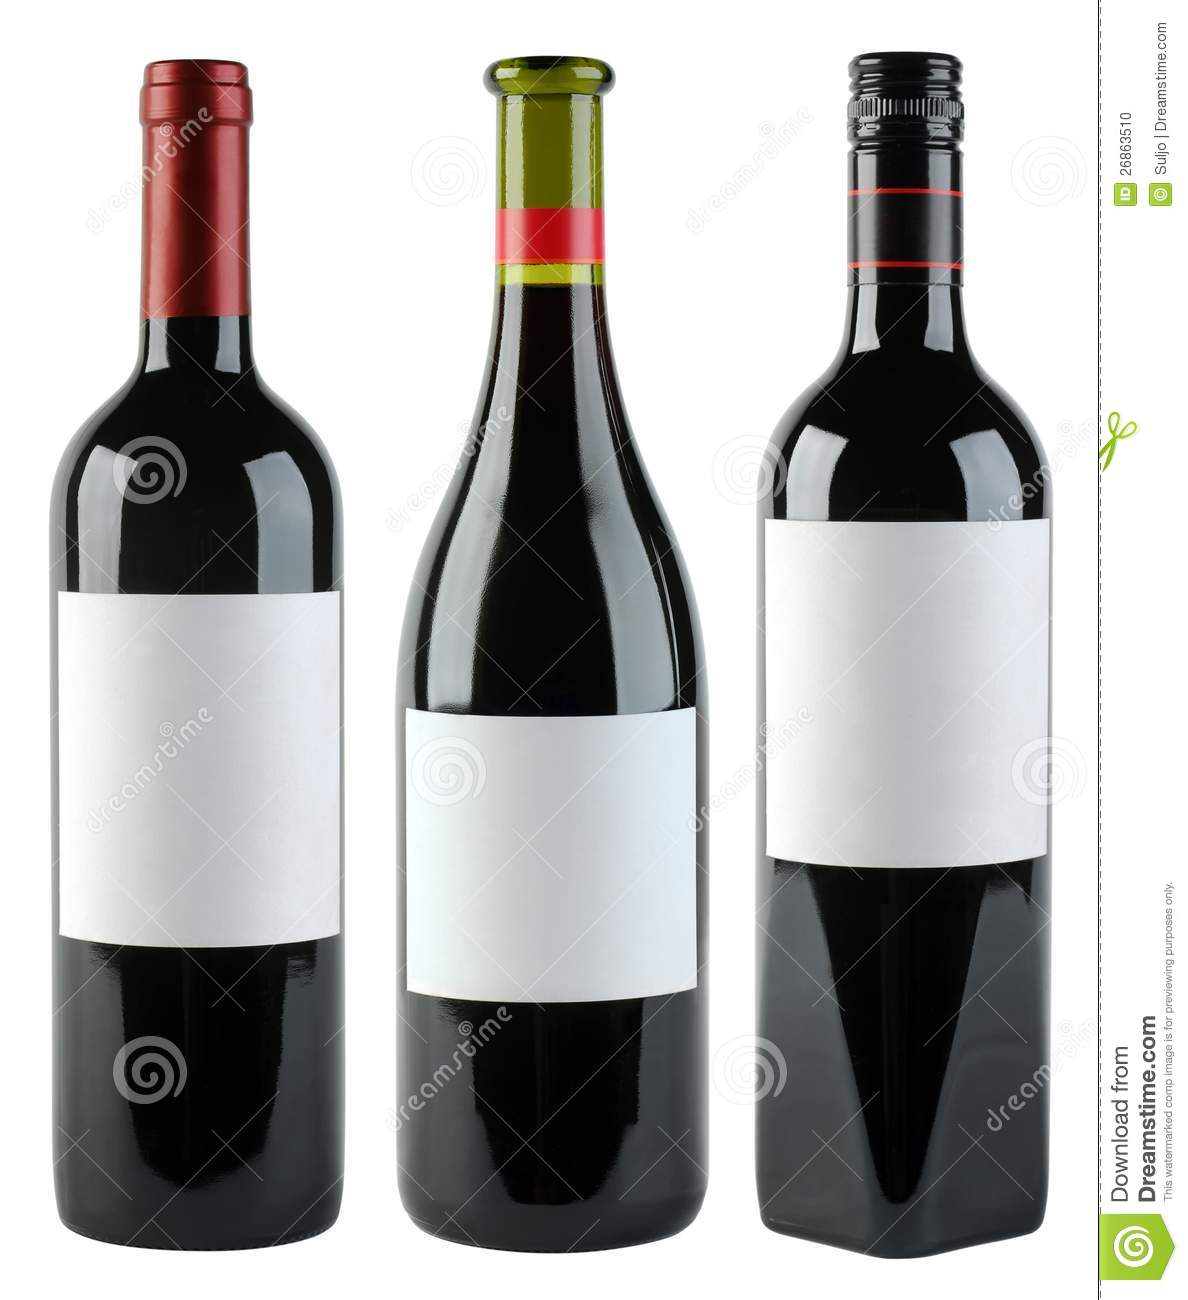 wine bottles template stock photo image of product standing 26863510